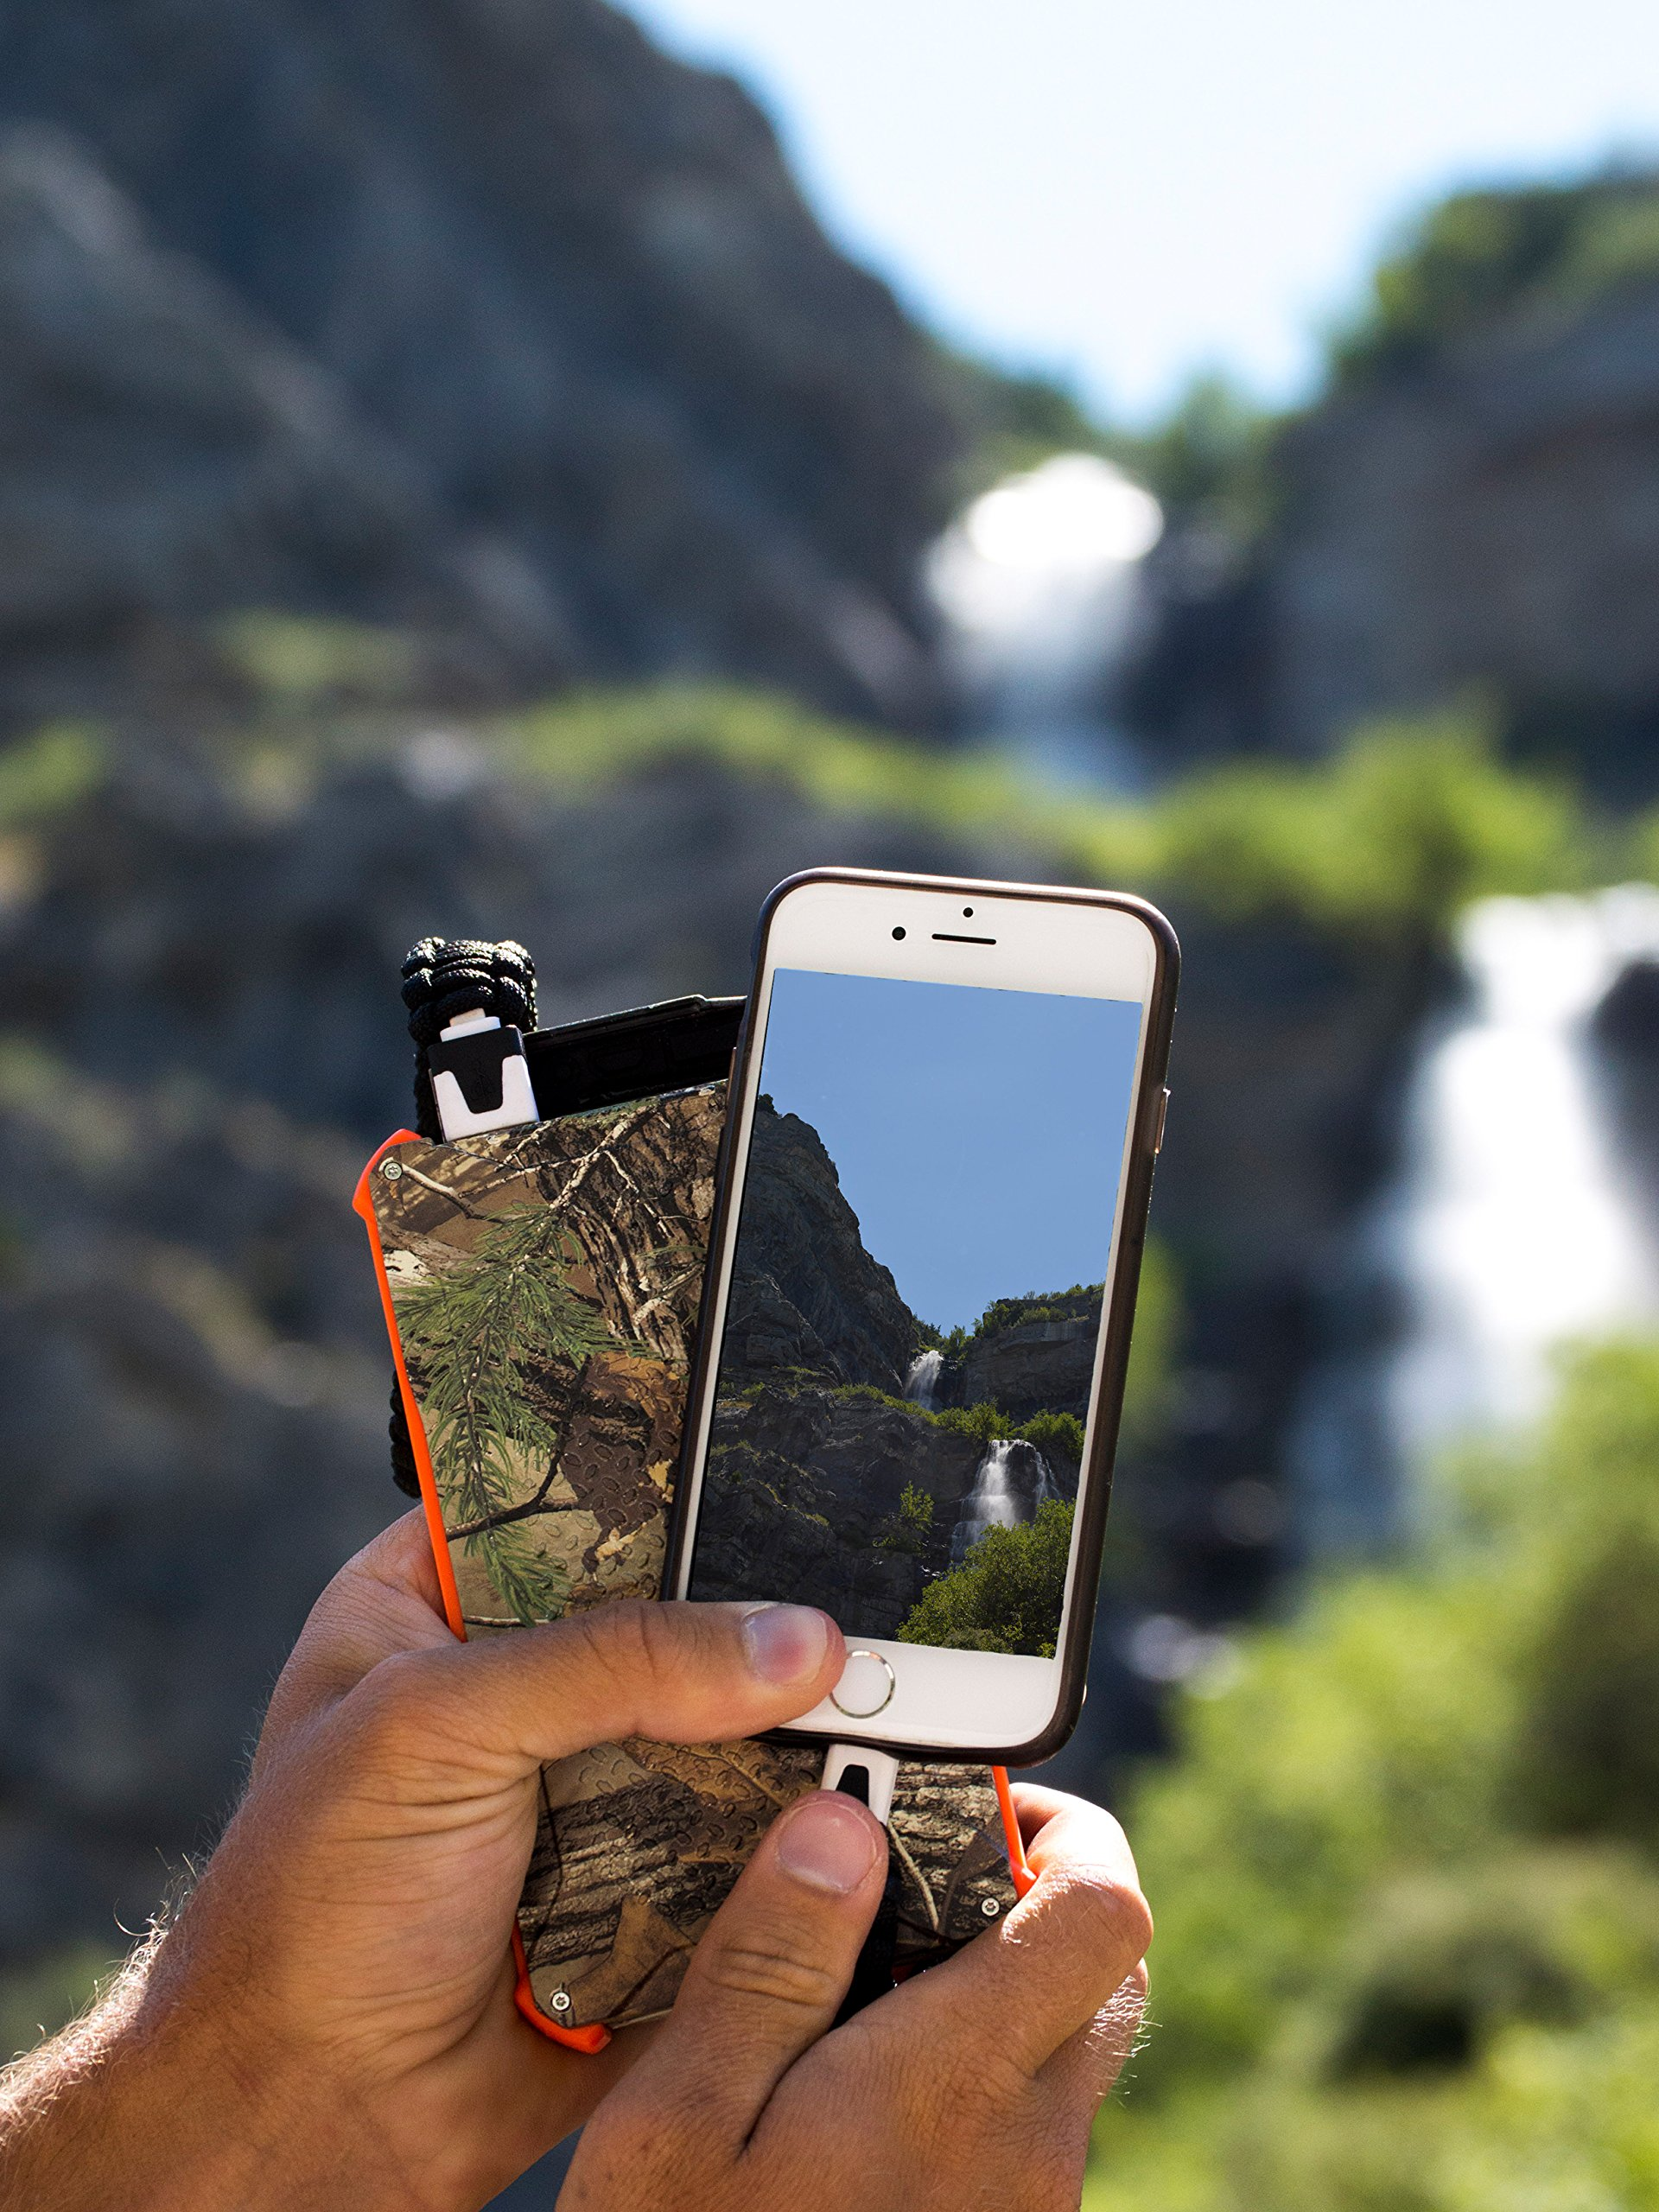 Dark Energy Poseidon IP68 Waterproof, Shockproof, Dustproof, 10,000mah, 2 USB Port, 3.4 Amp Portable Charger and Light PLUS Paracord Charging Cable, Realtree by Dark Energy (Image #5)